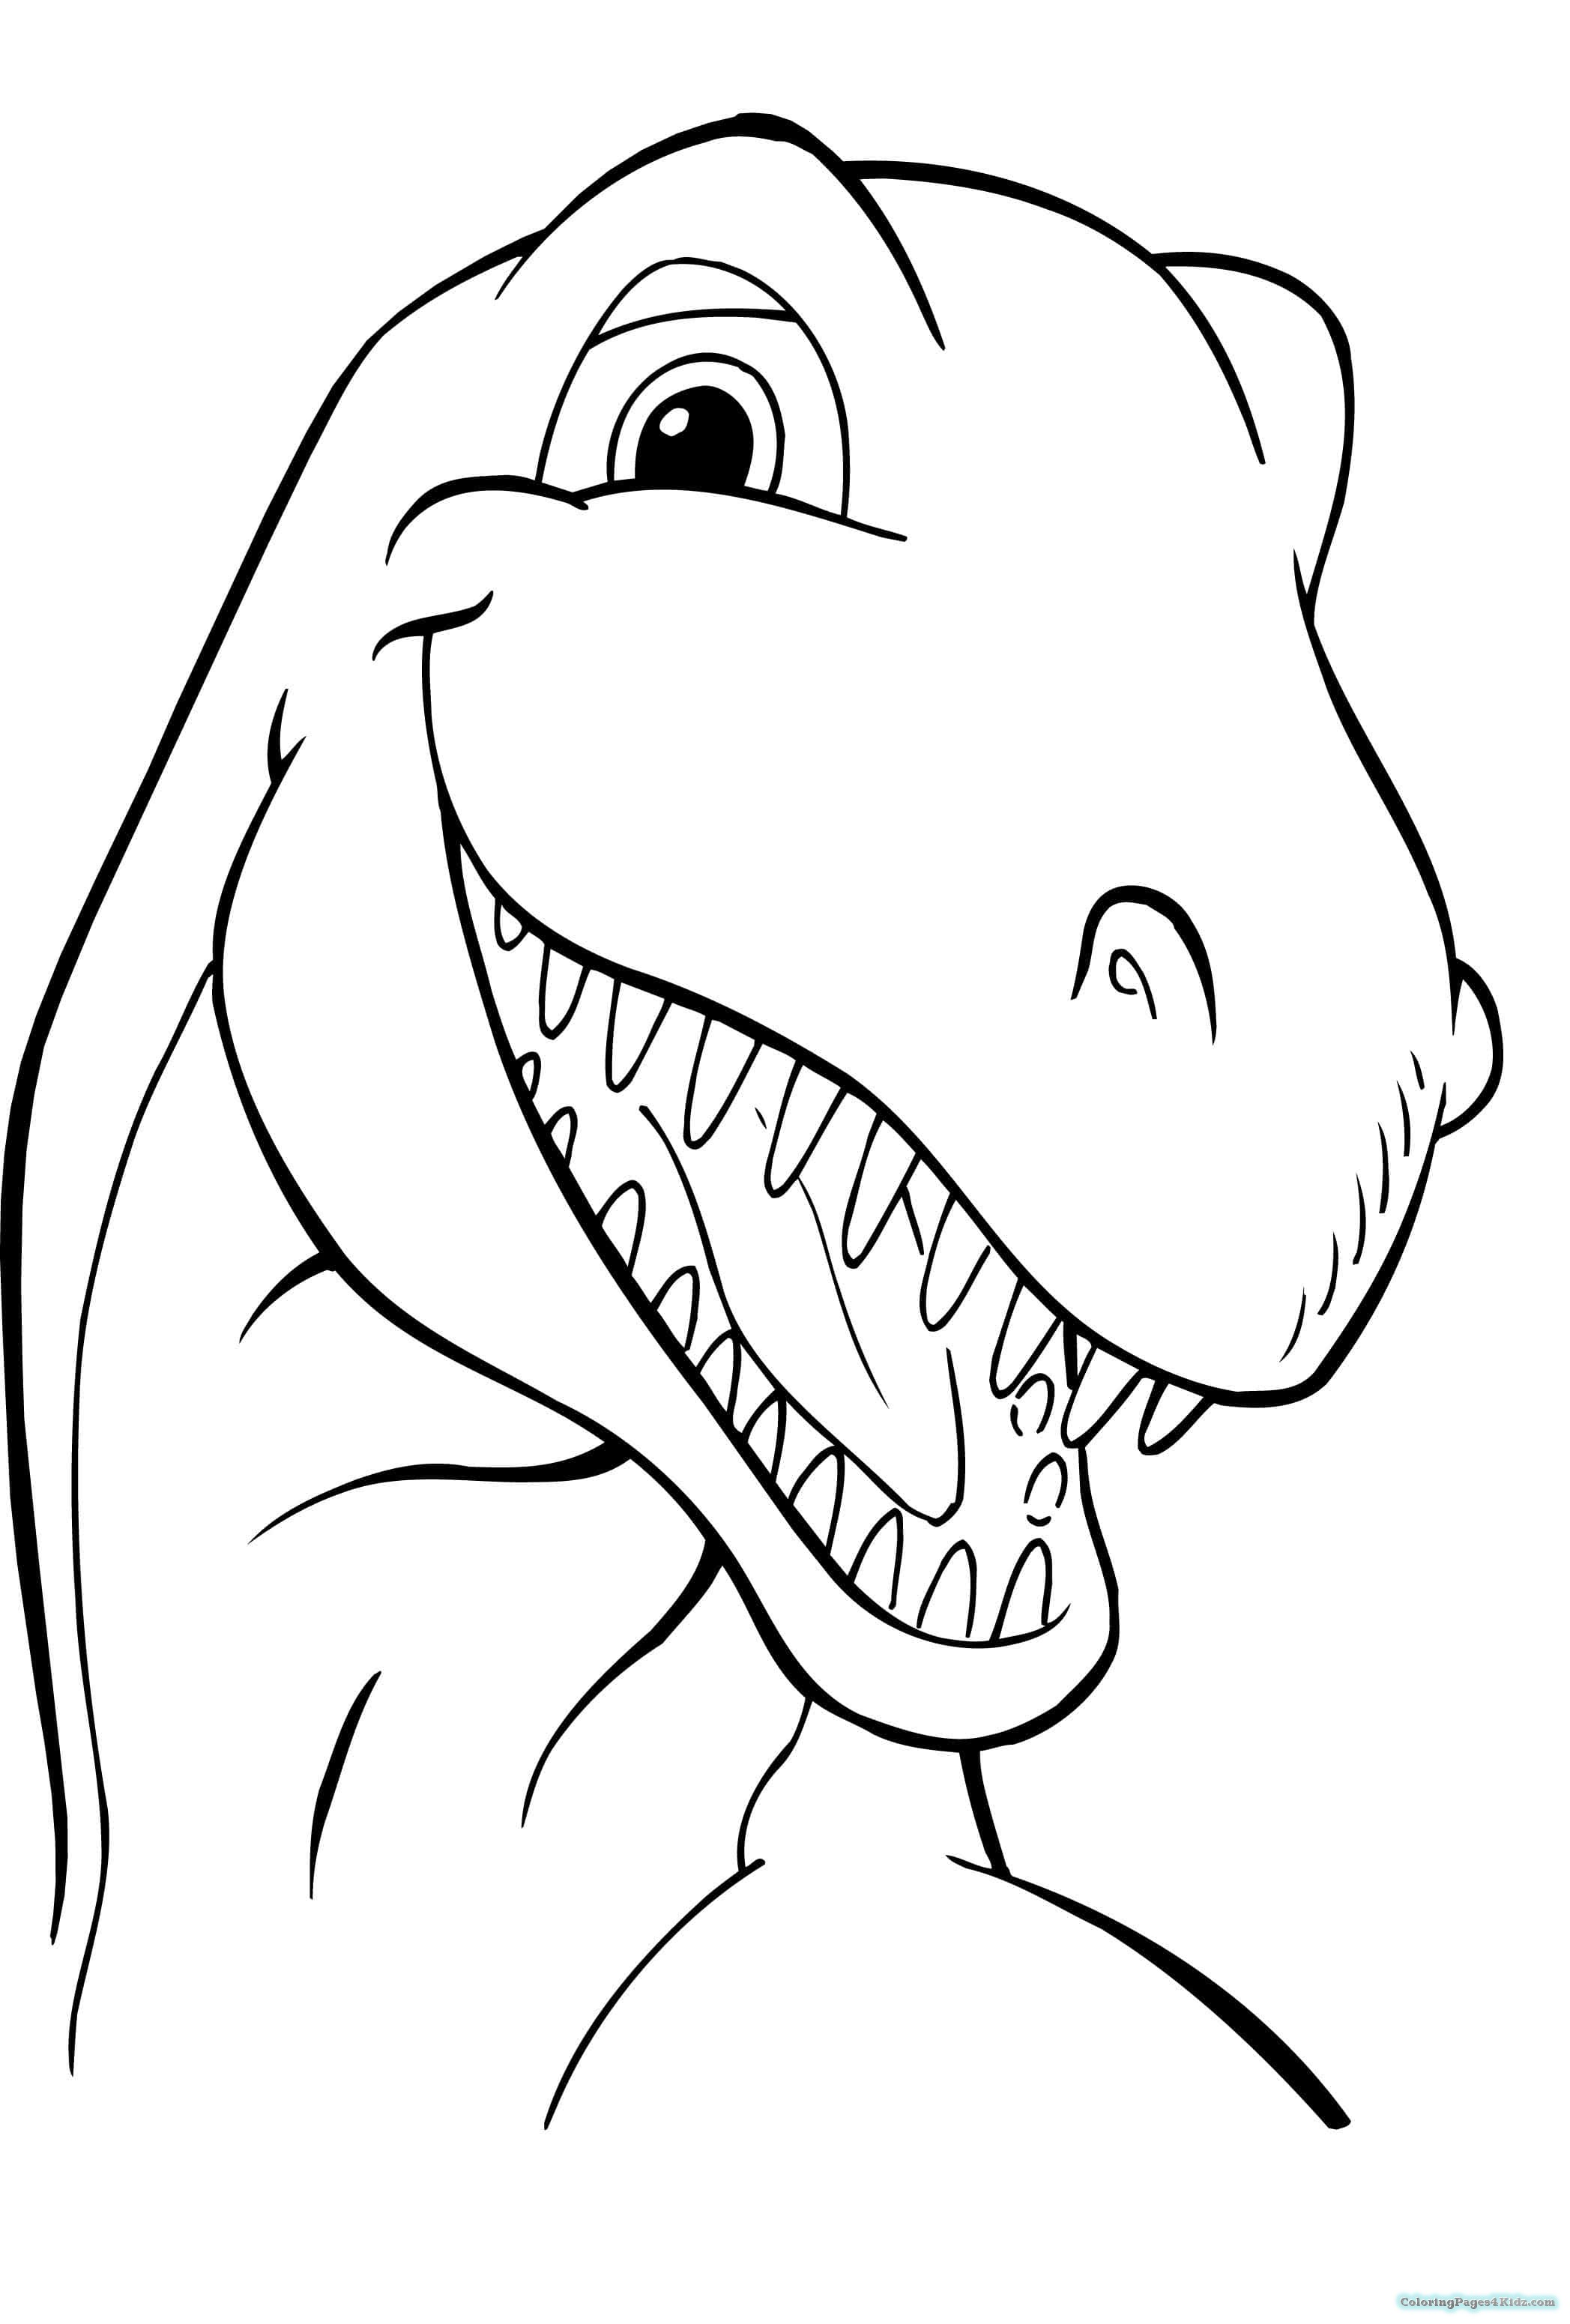 meat eating dinosaur coloring pages meat eating dinosaurs coloring pages t rex coloring coloring pages meat dinosaur eating 1 1